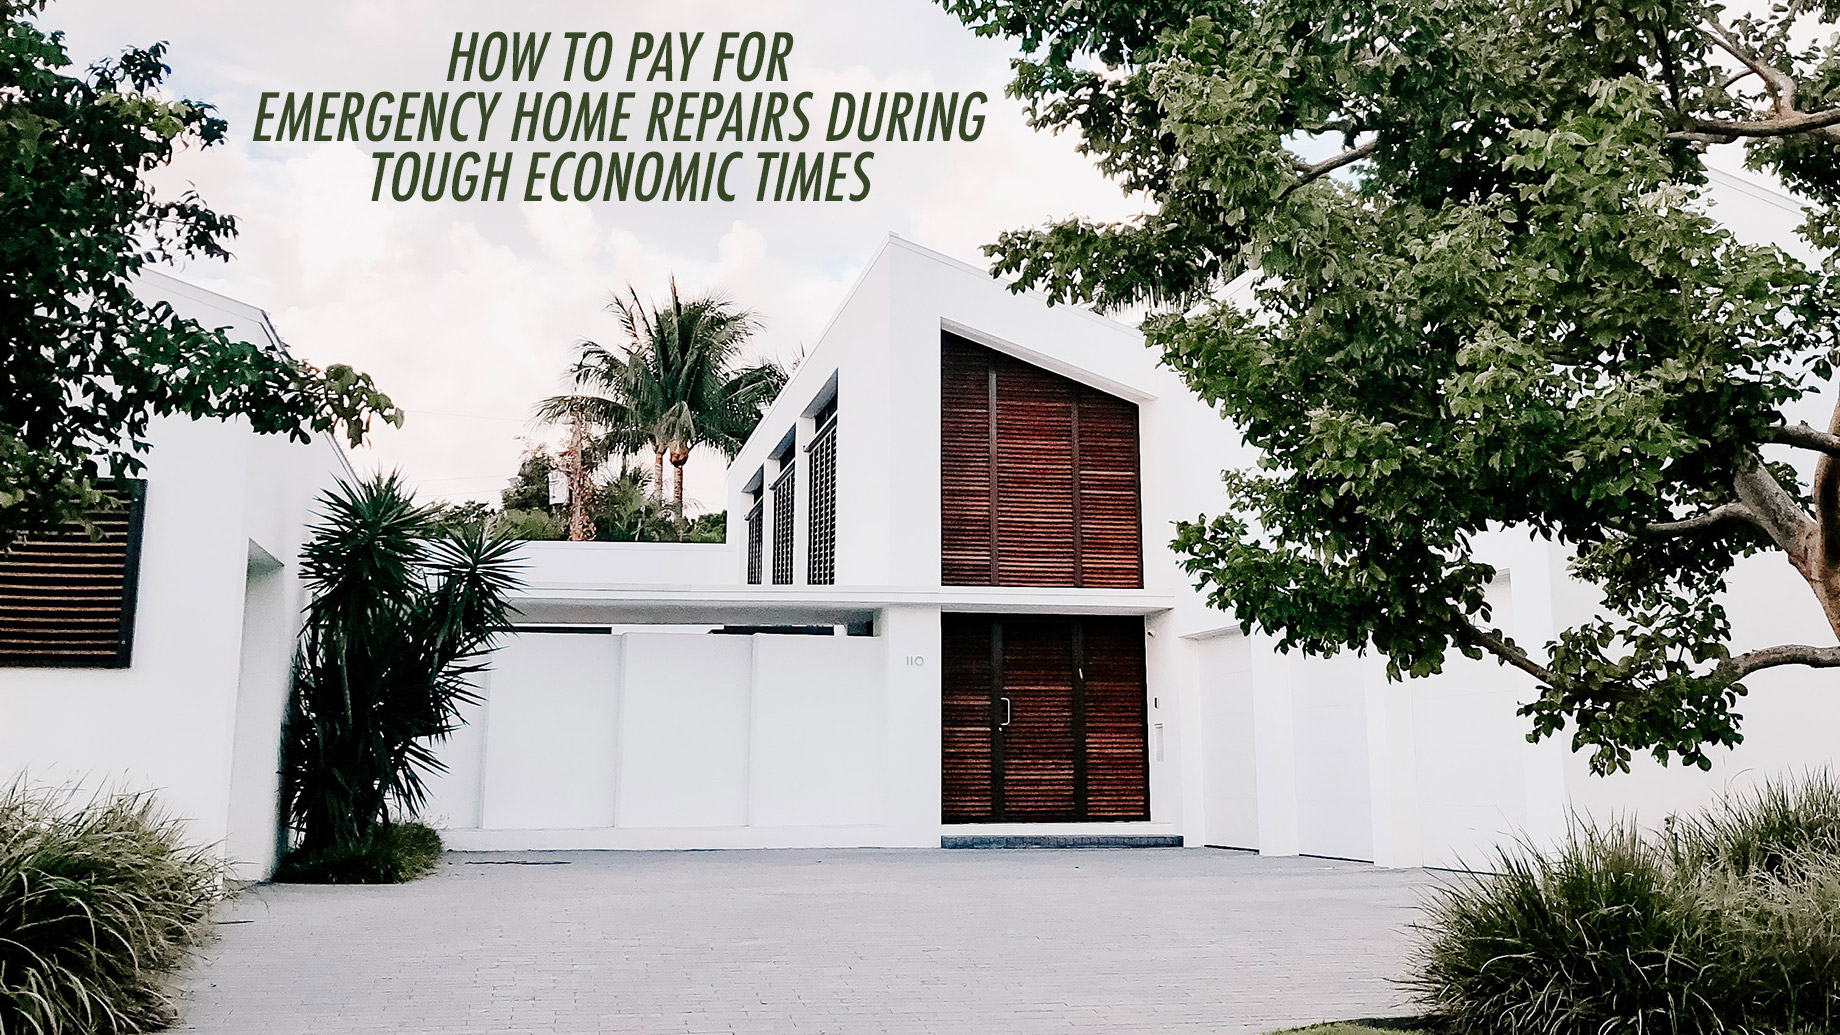 How To Pay For Emergency Home Repairs During Tough Economic Times